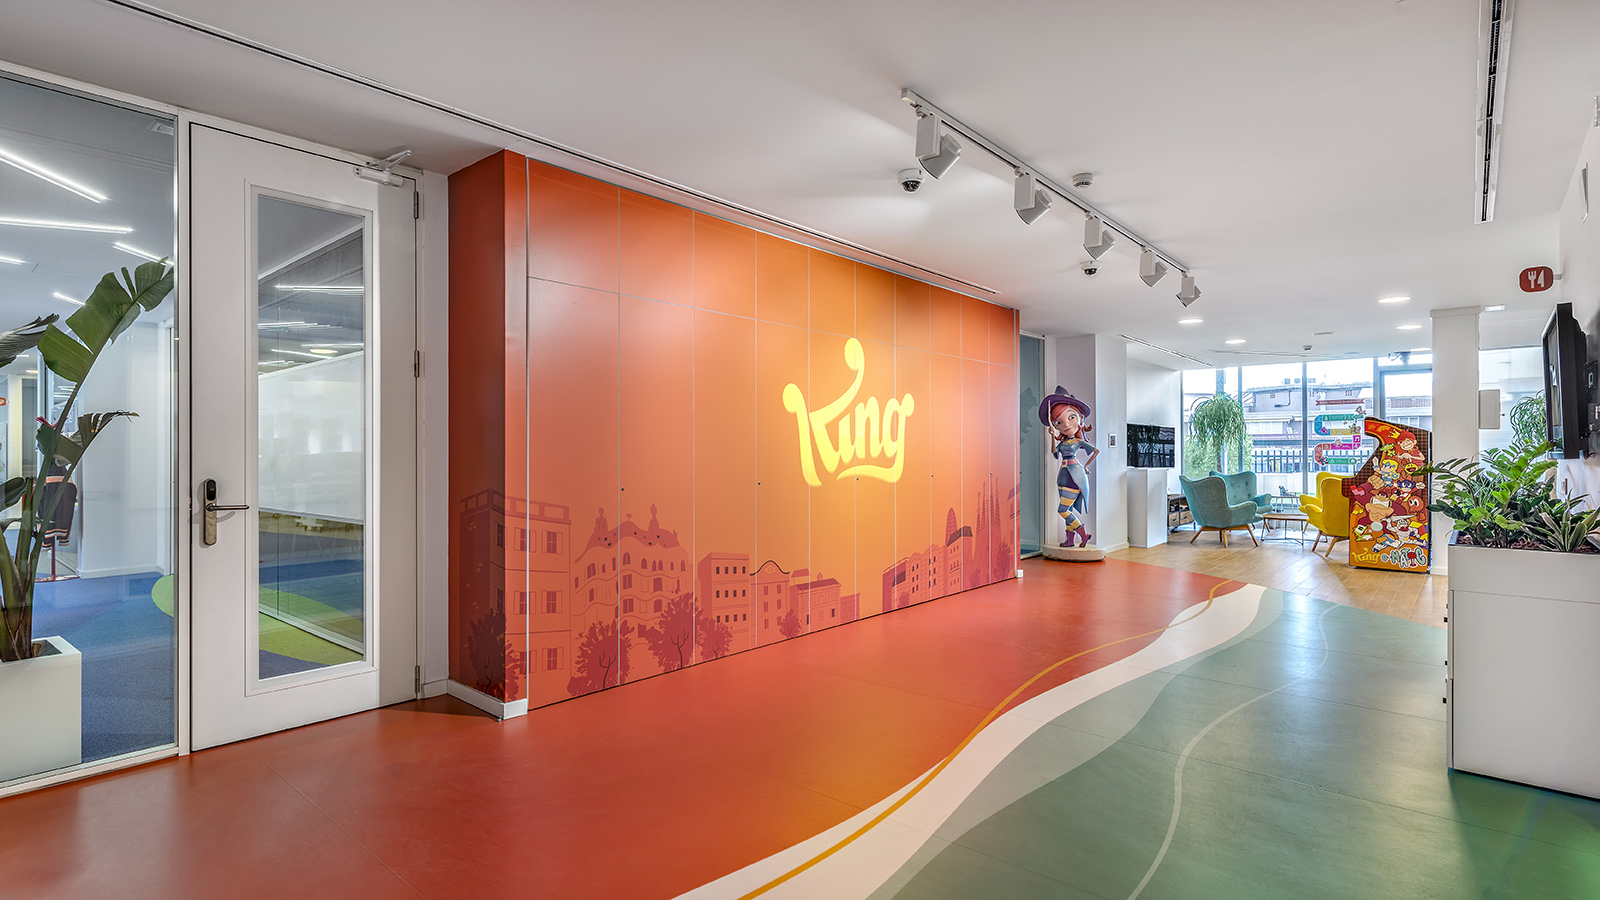 king-barcelona-office-1